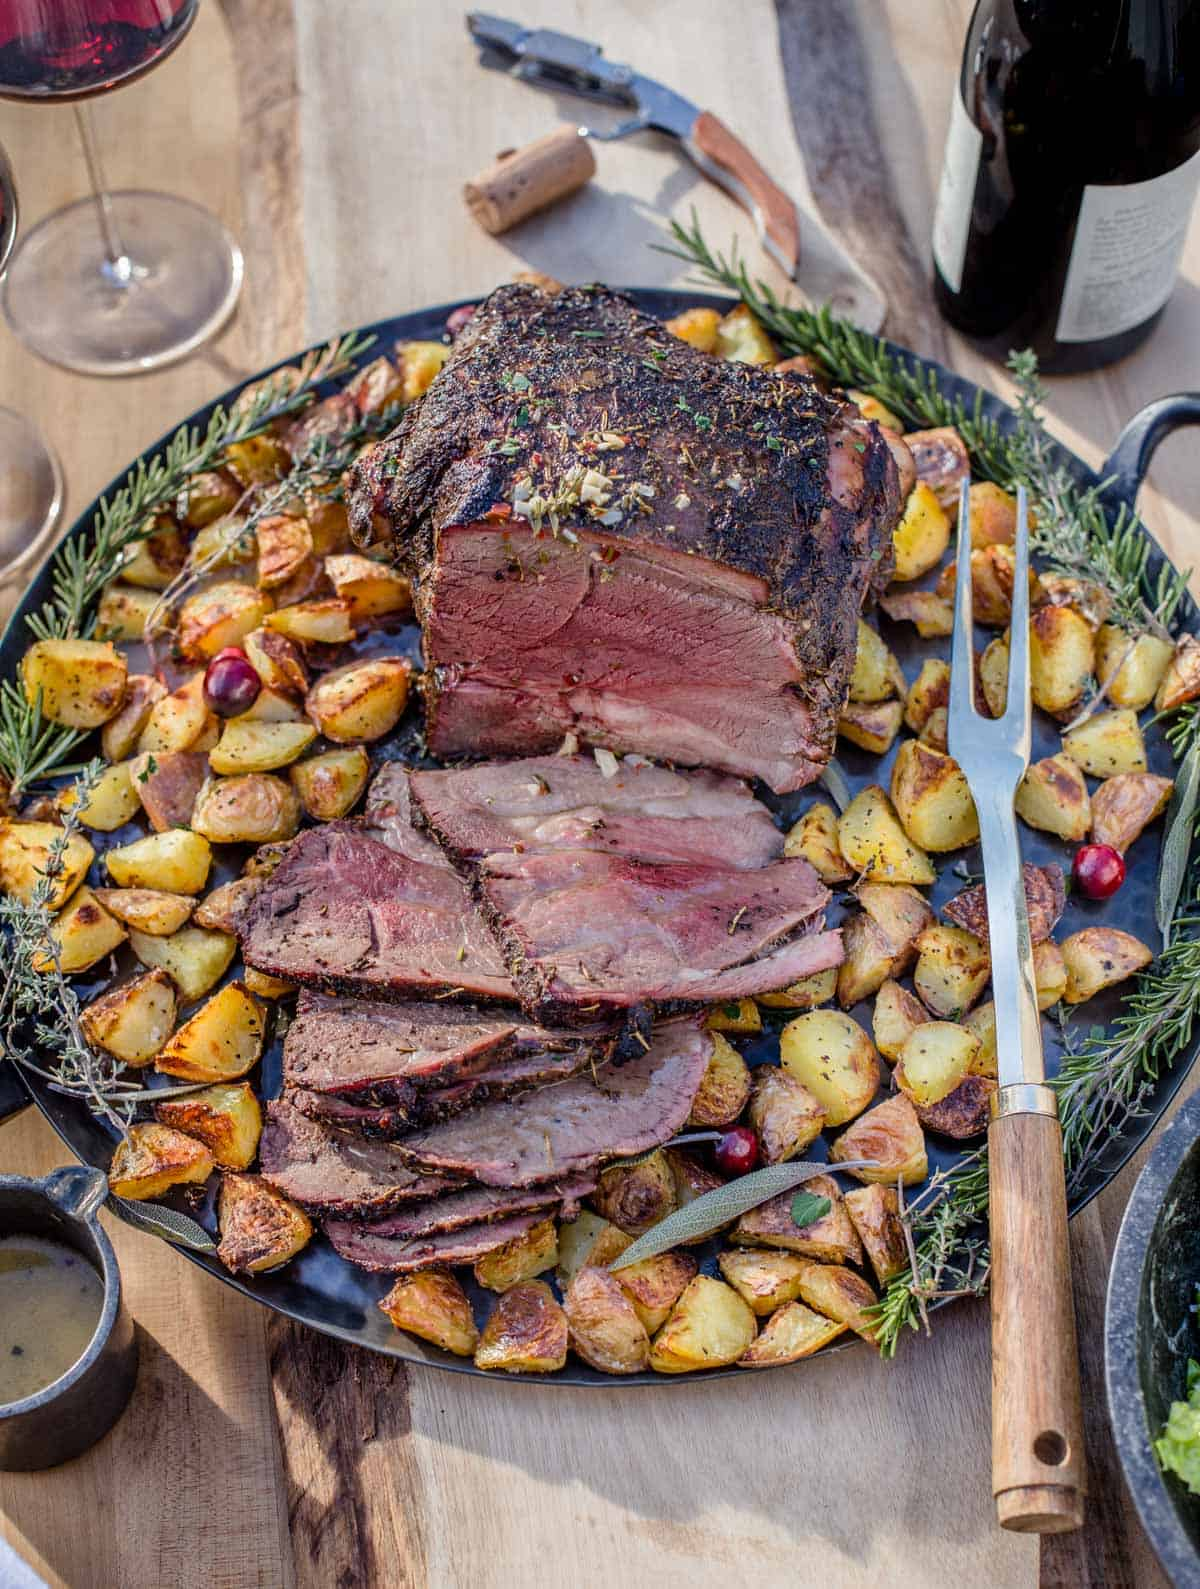 Slices of smoked leg of lamb on a platter with roasted potatoes